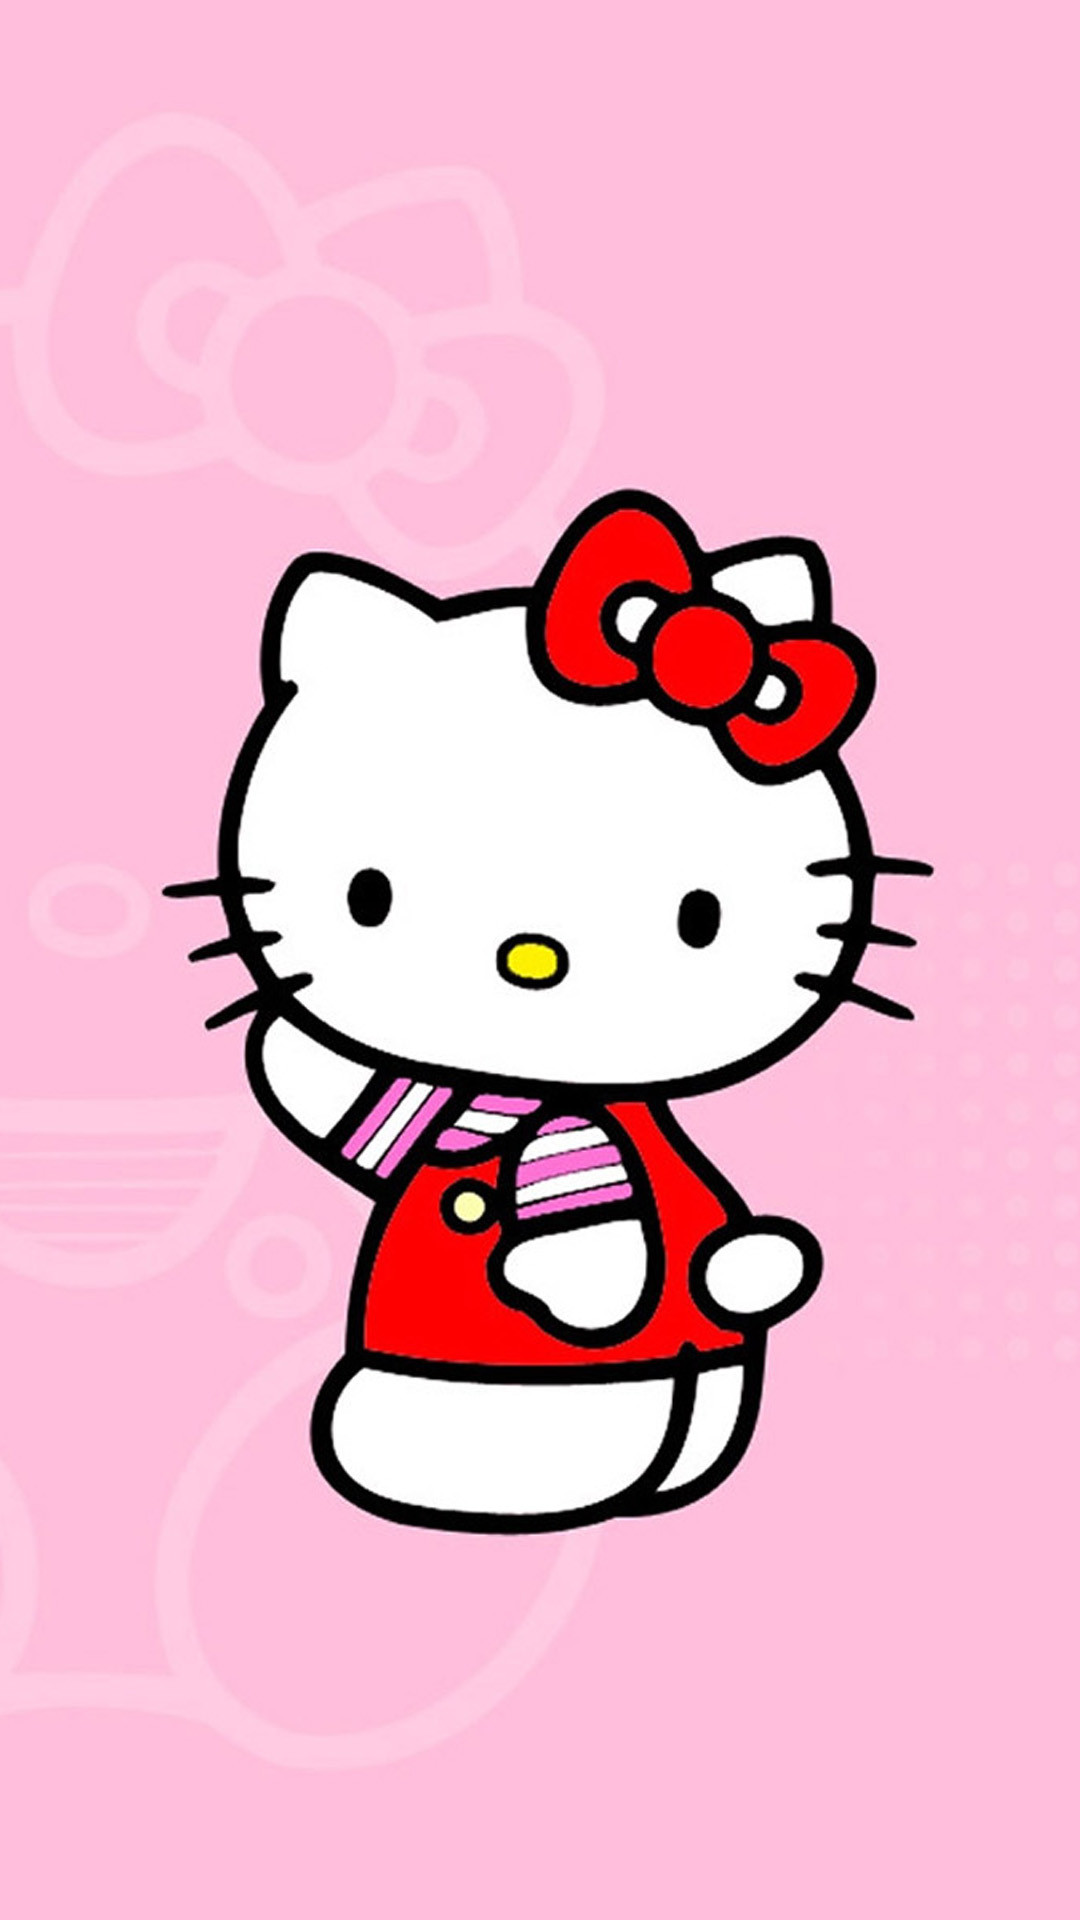 Hello Kitty Wallpaper for iPhone 72 images 1080x1920